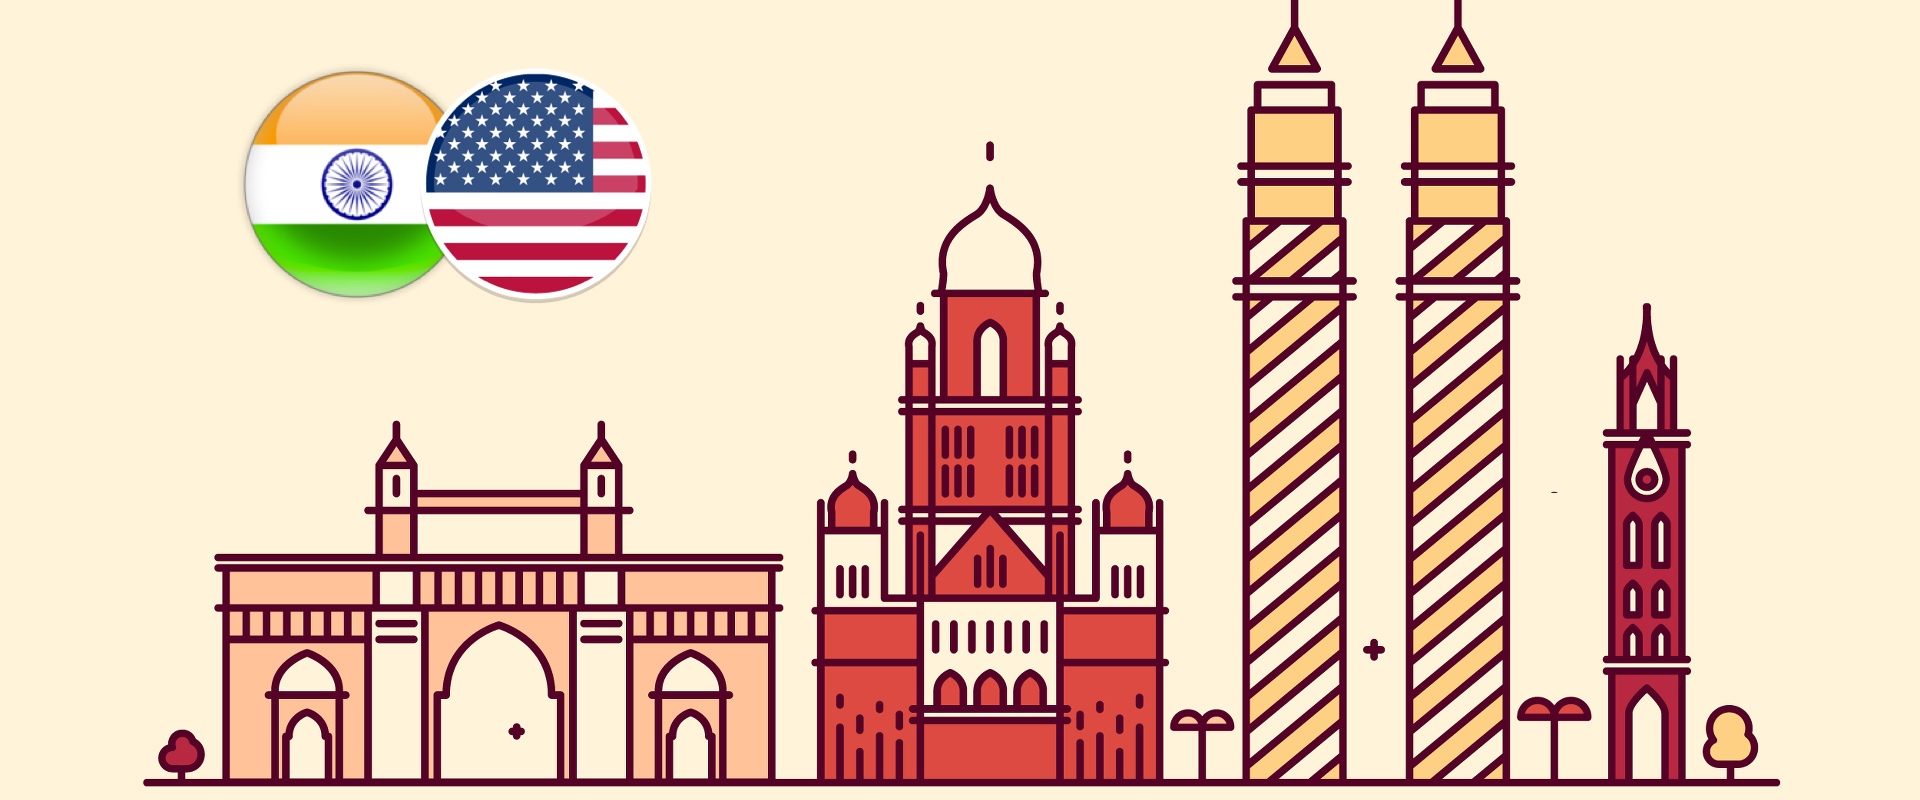 India infographic with Indian and US flag